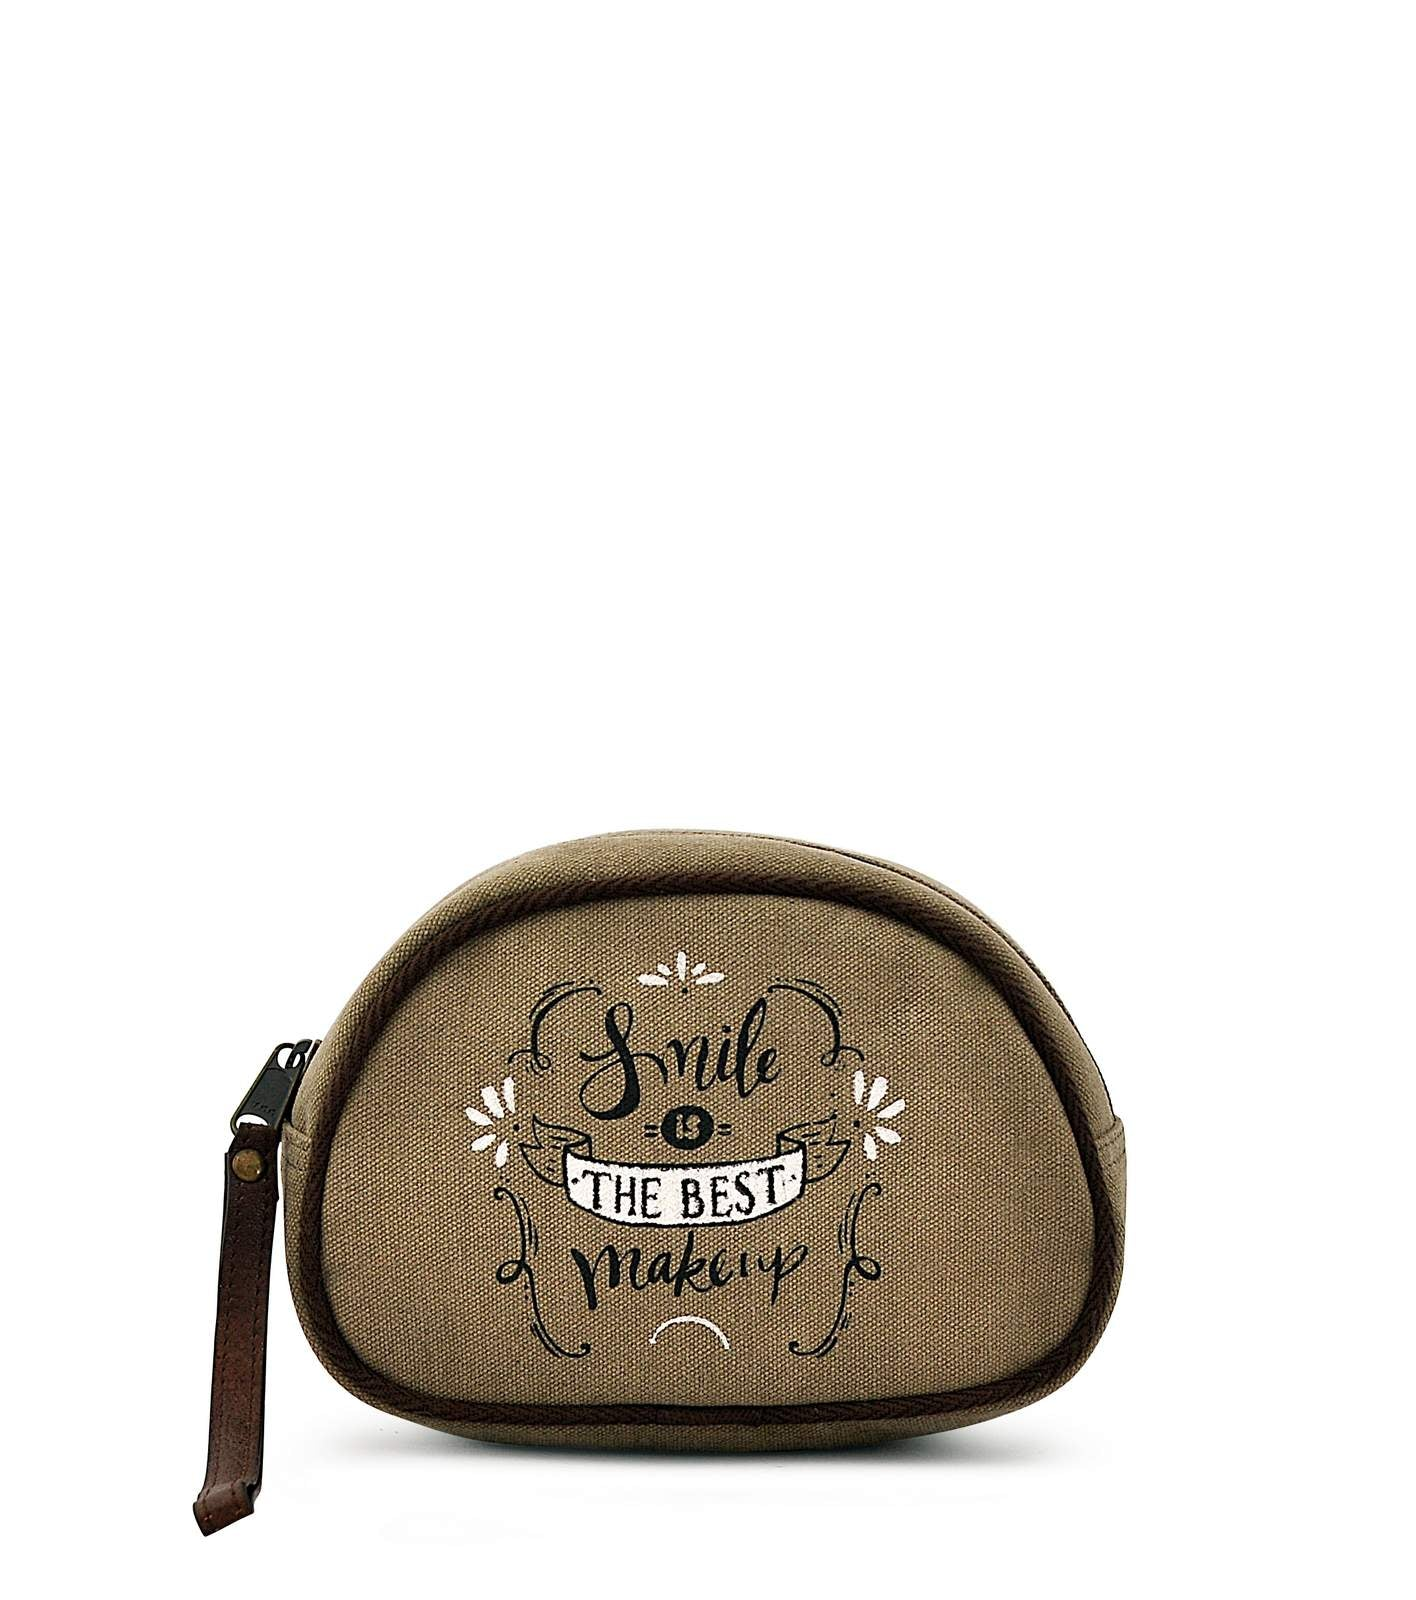 Make Up & Cosmetic Bag DSM18-0104